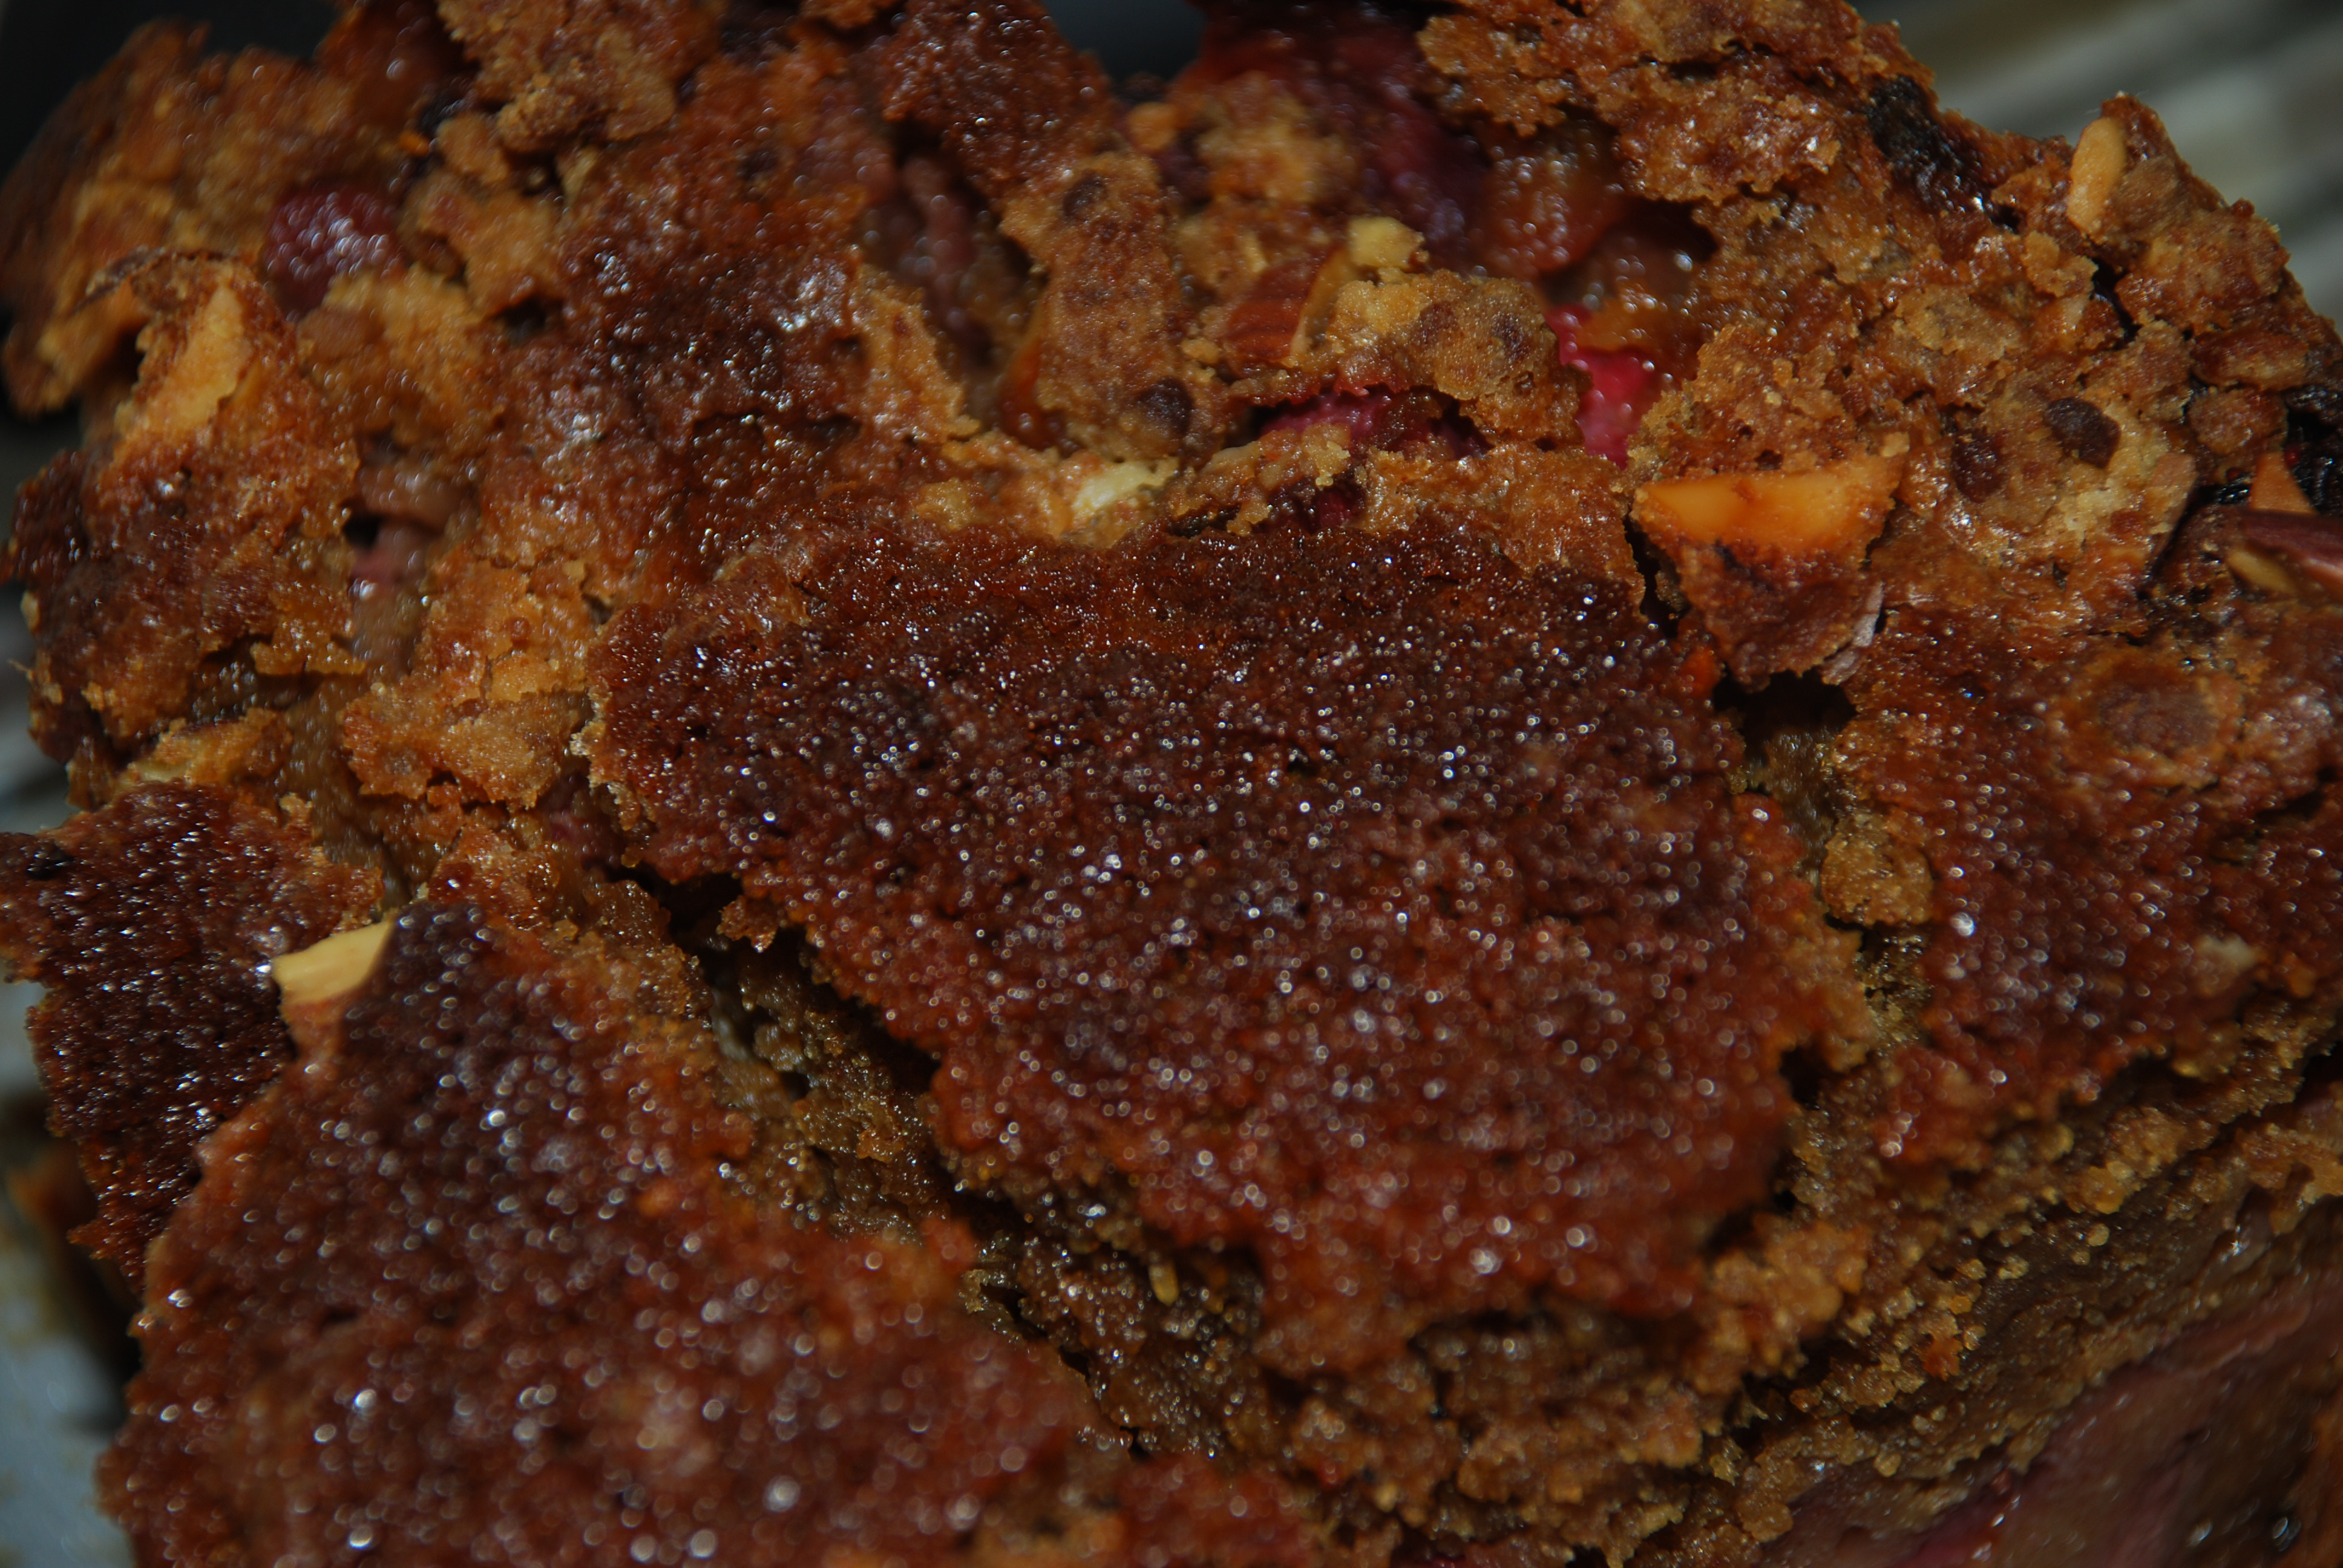 What Does It Mean If Fruit Cake Is Crumbly